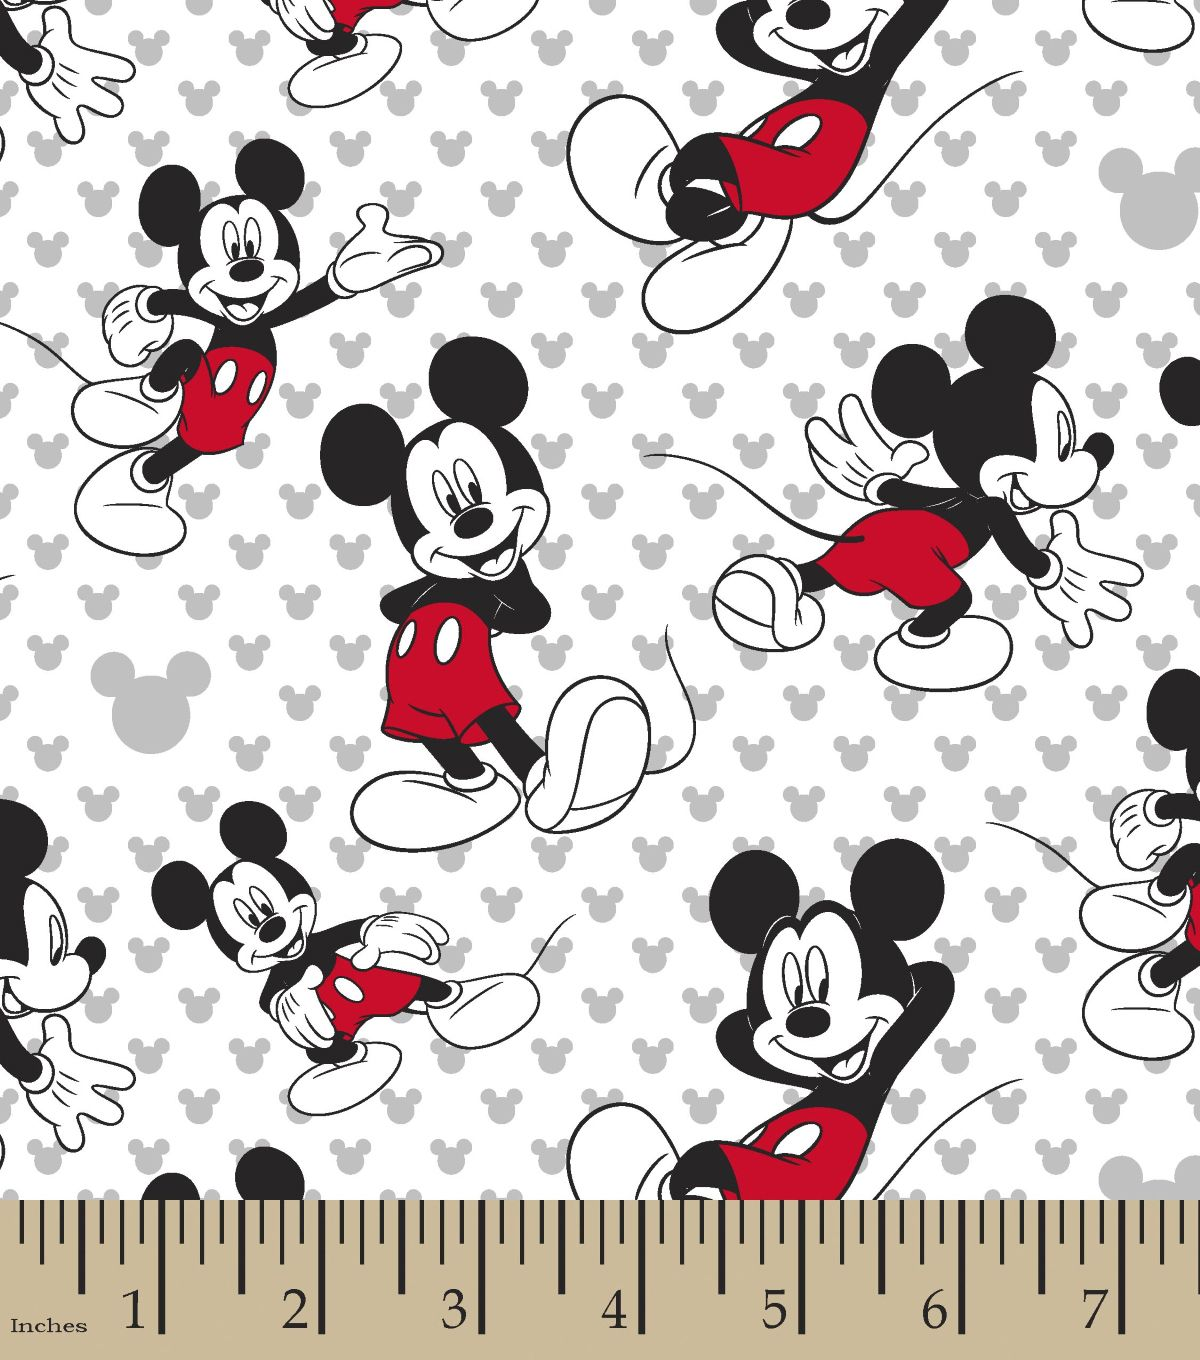 Disney Mickey Mouse Cotton Fabric Totally Mickey Toss | JOANN | Mickey mouse  fabric, Disney fabric, Disney mickey mouse